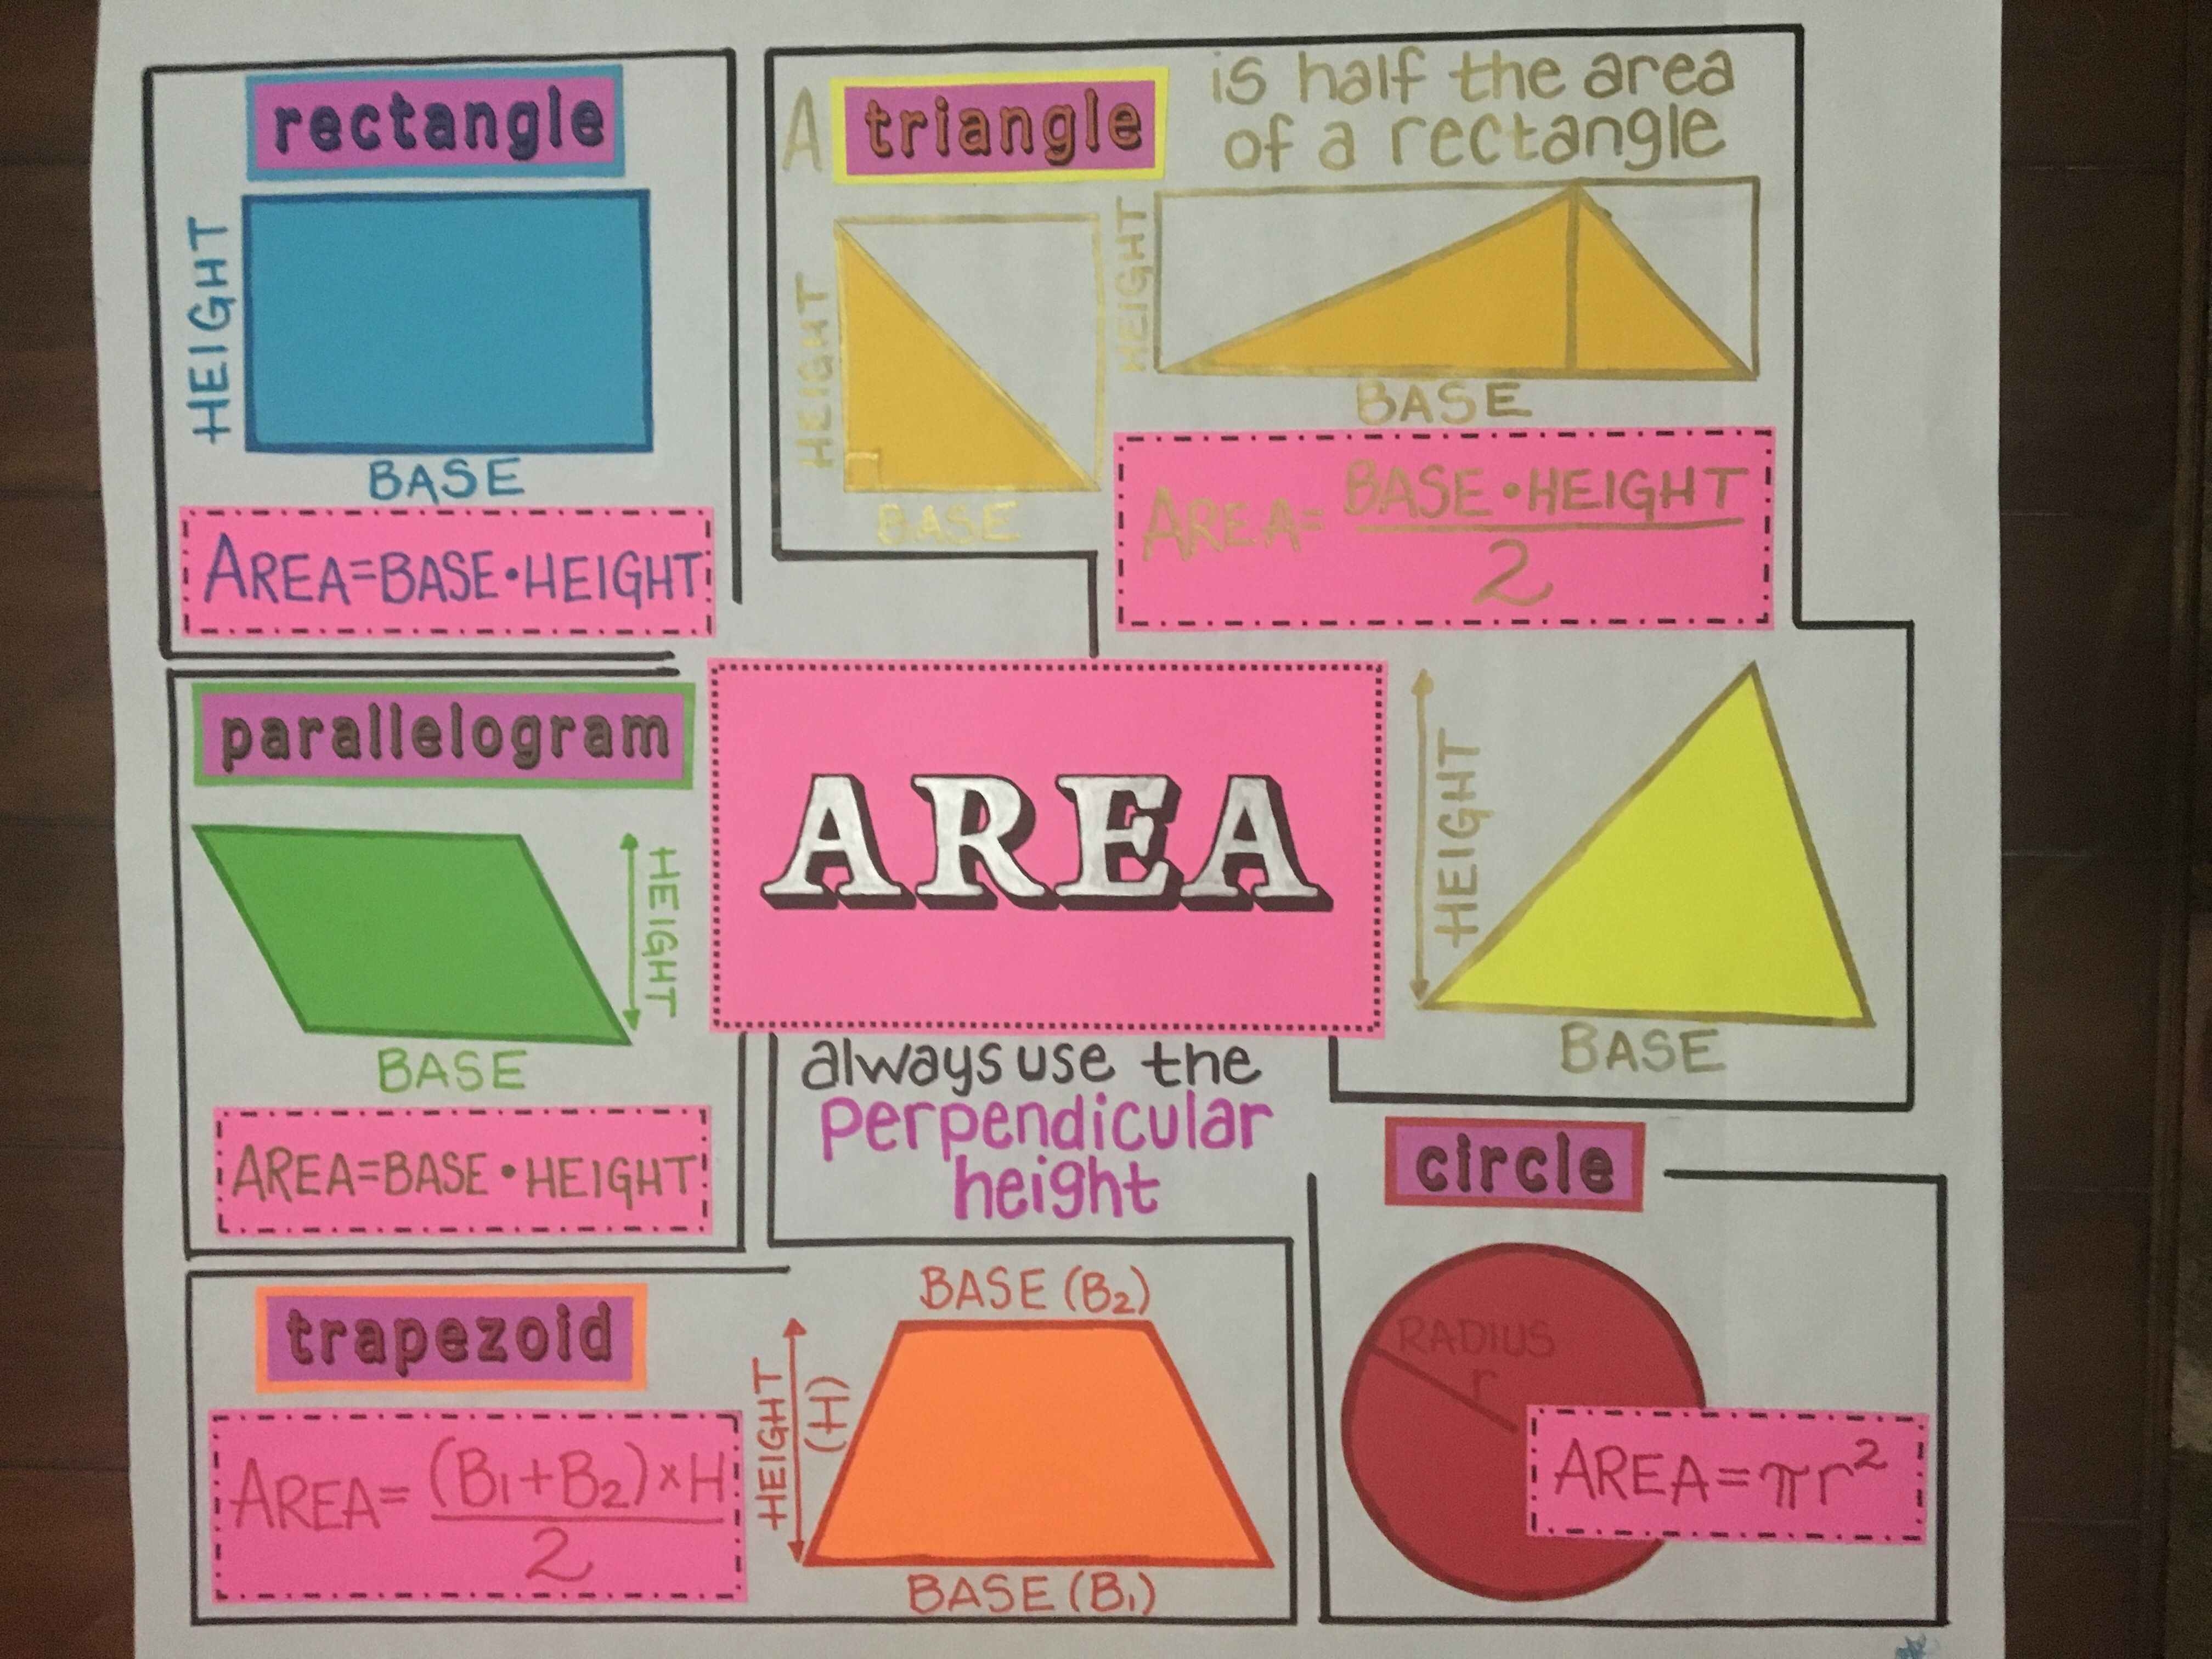 hight resolution of Colorful visual representation of area formulas for rectangles